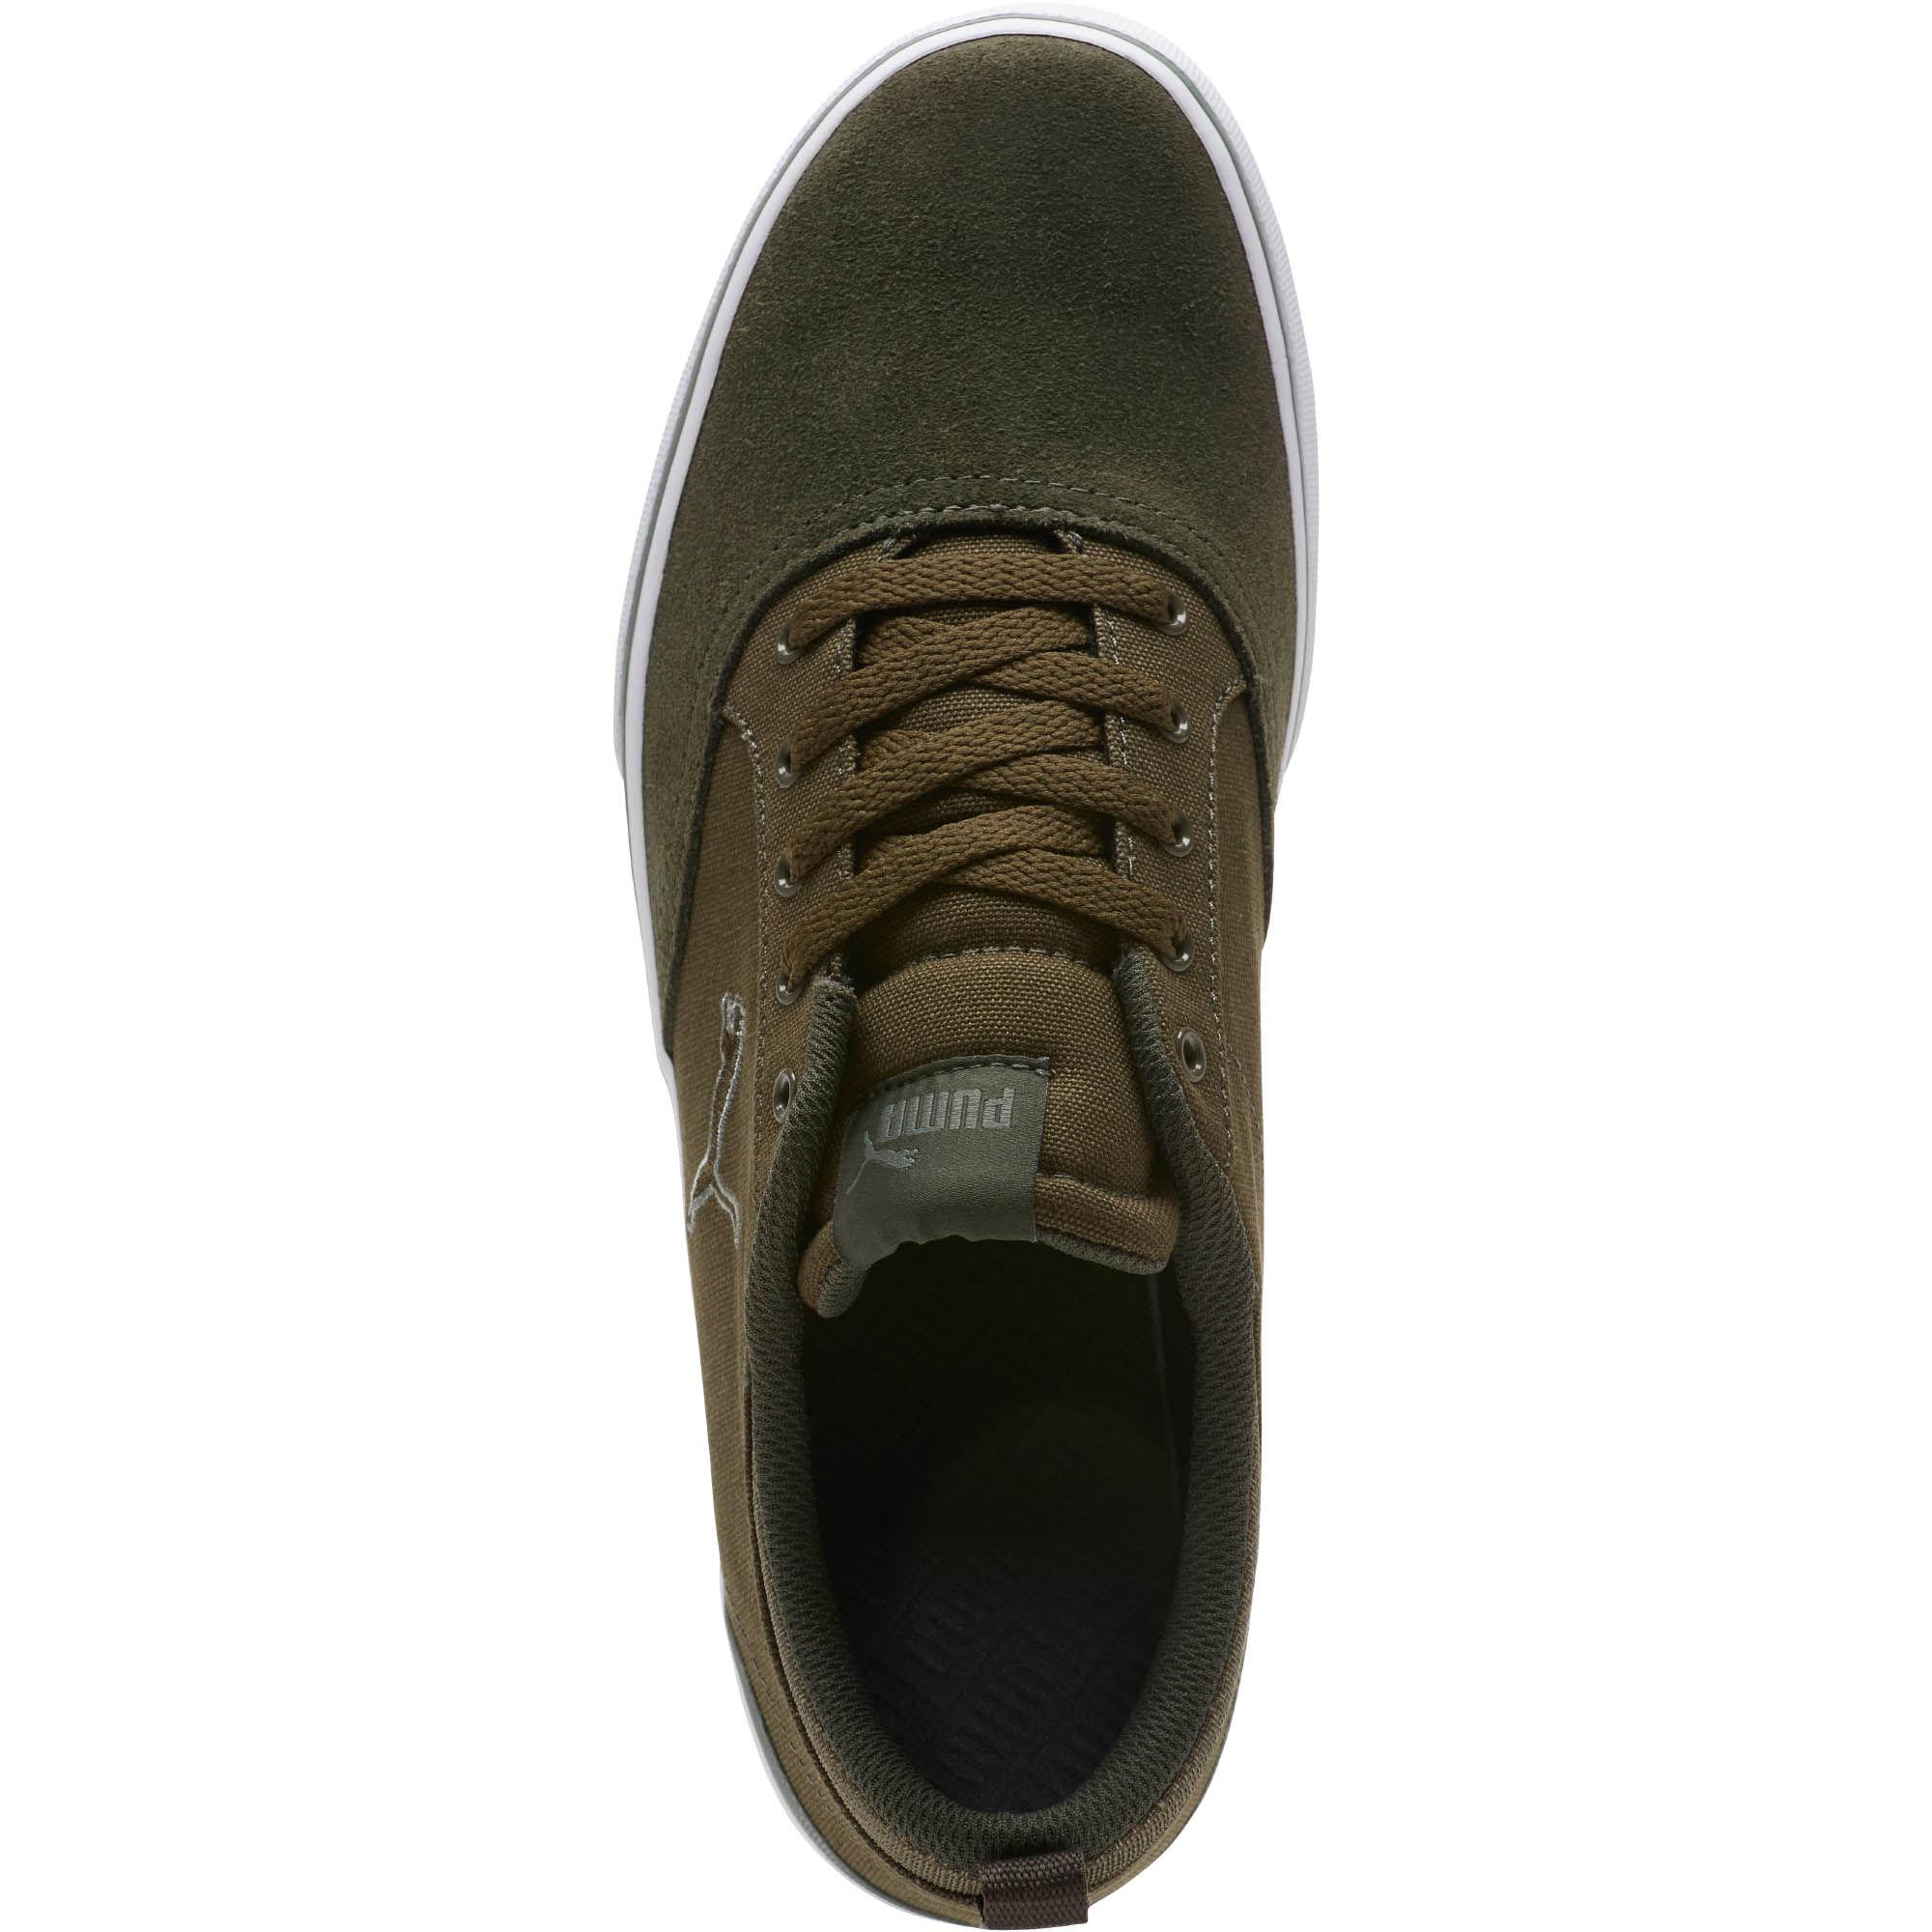 d801b4250c37 PUMA - Green Bridger Cat Men s Sneakers for Men - Lyst. View fullscreen